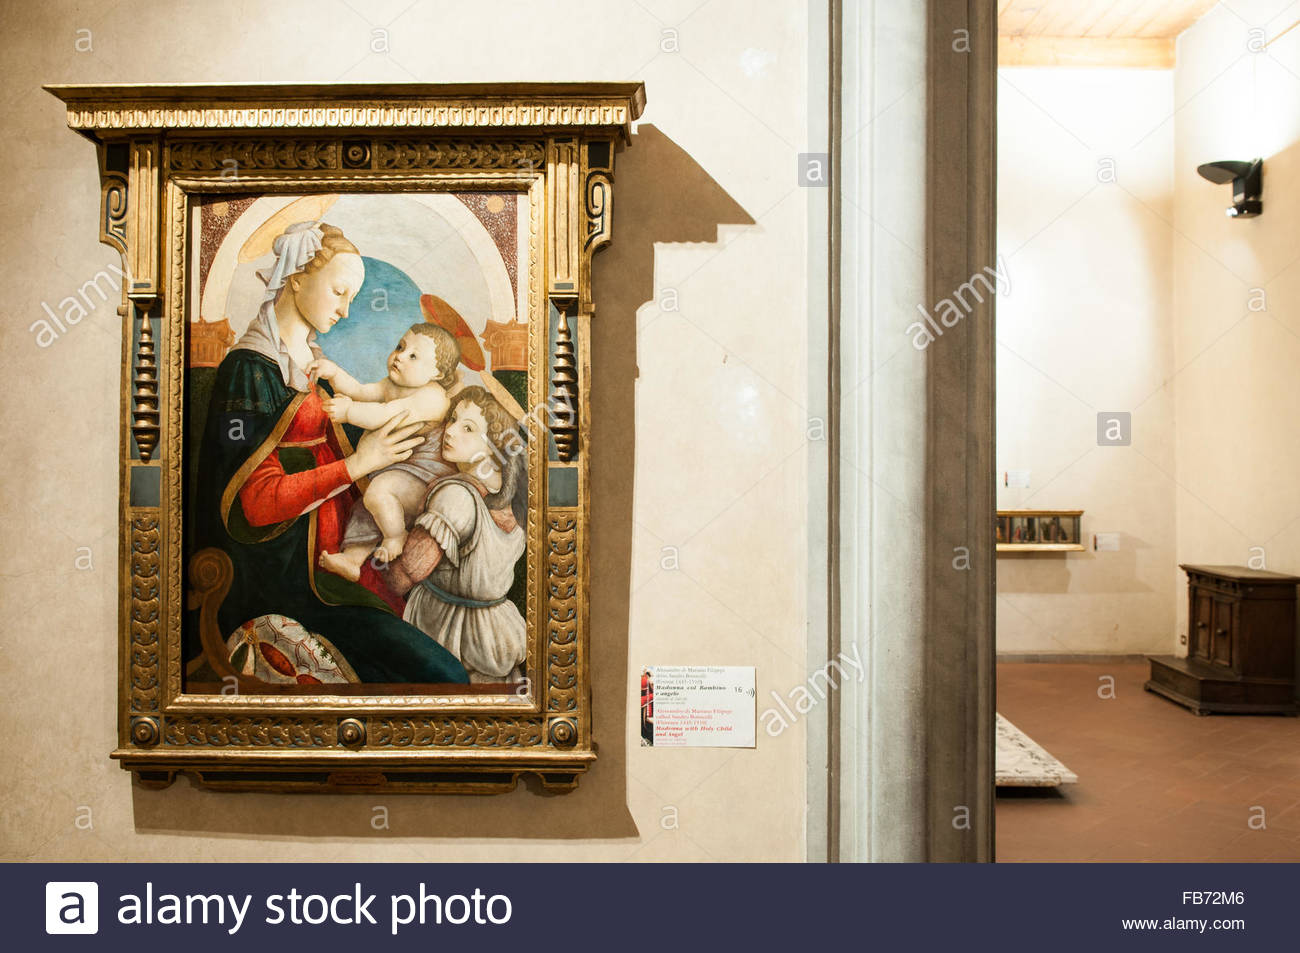 madonna with holy child and angel - Stock Image